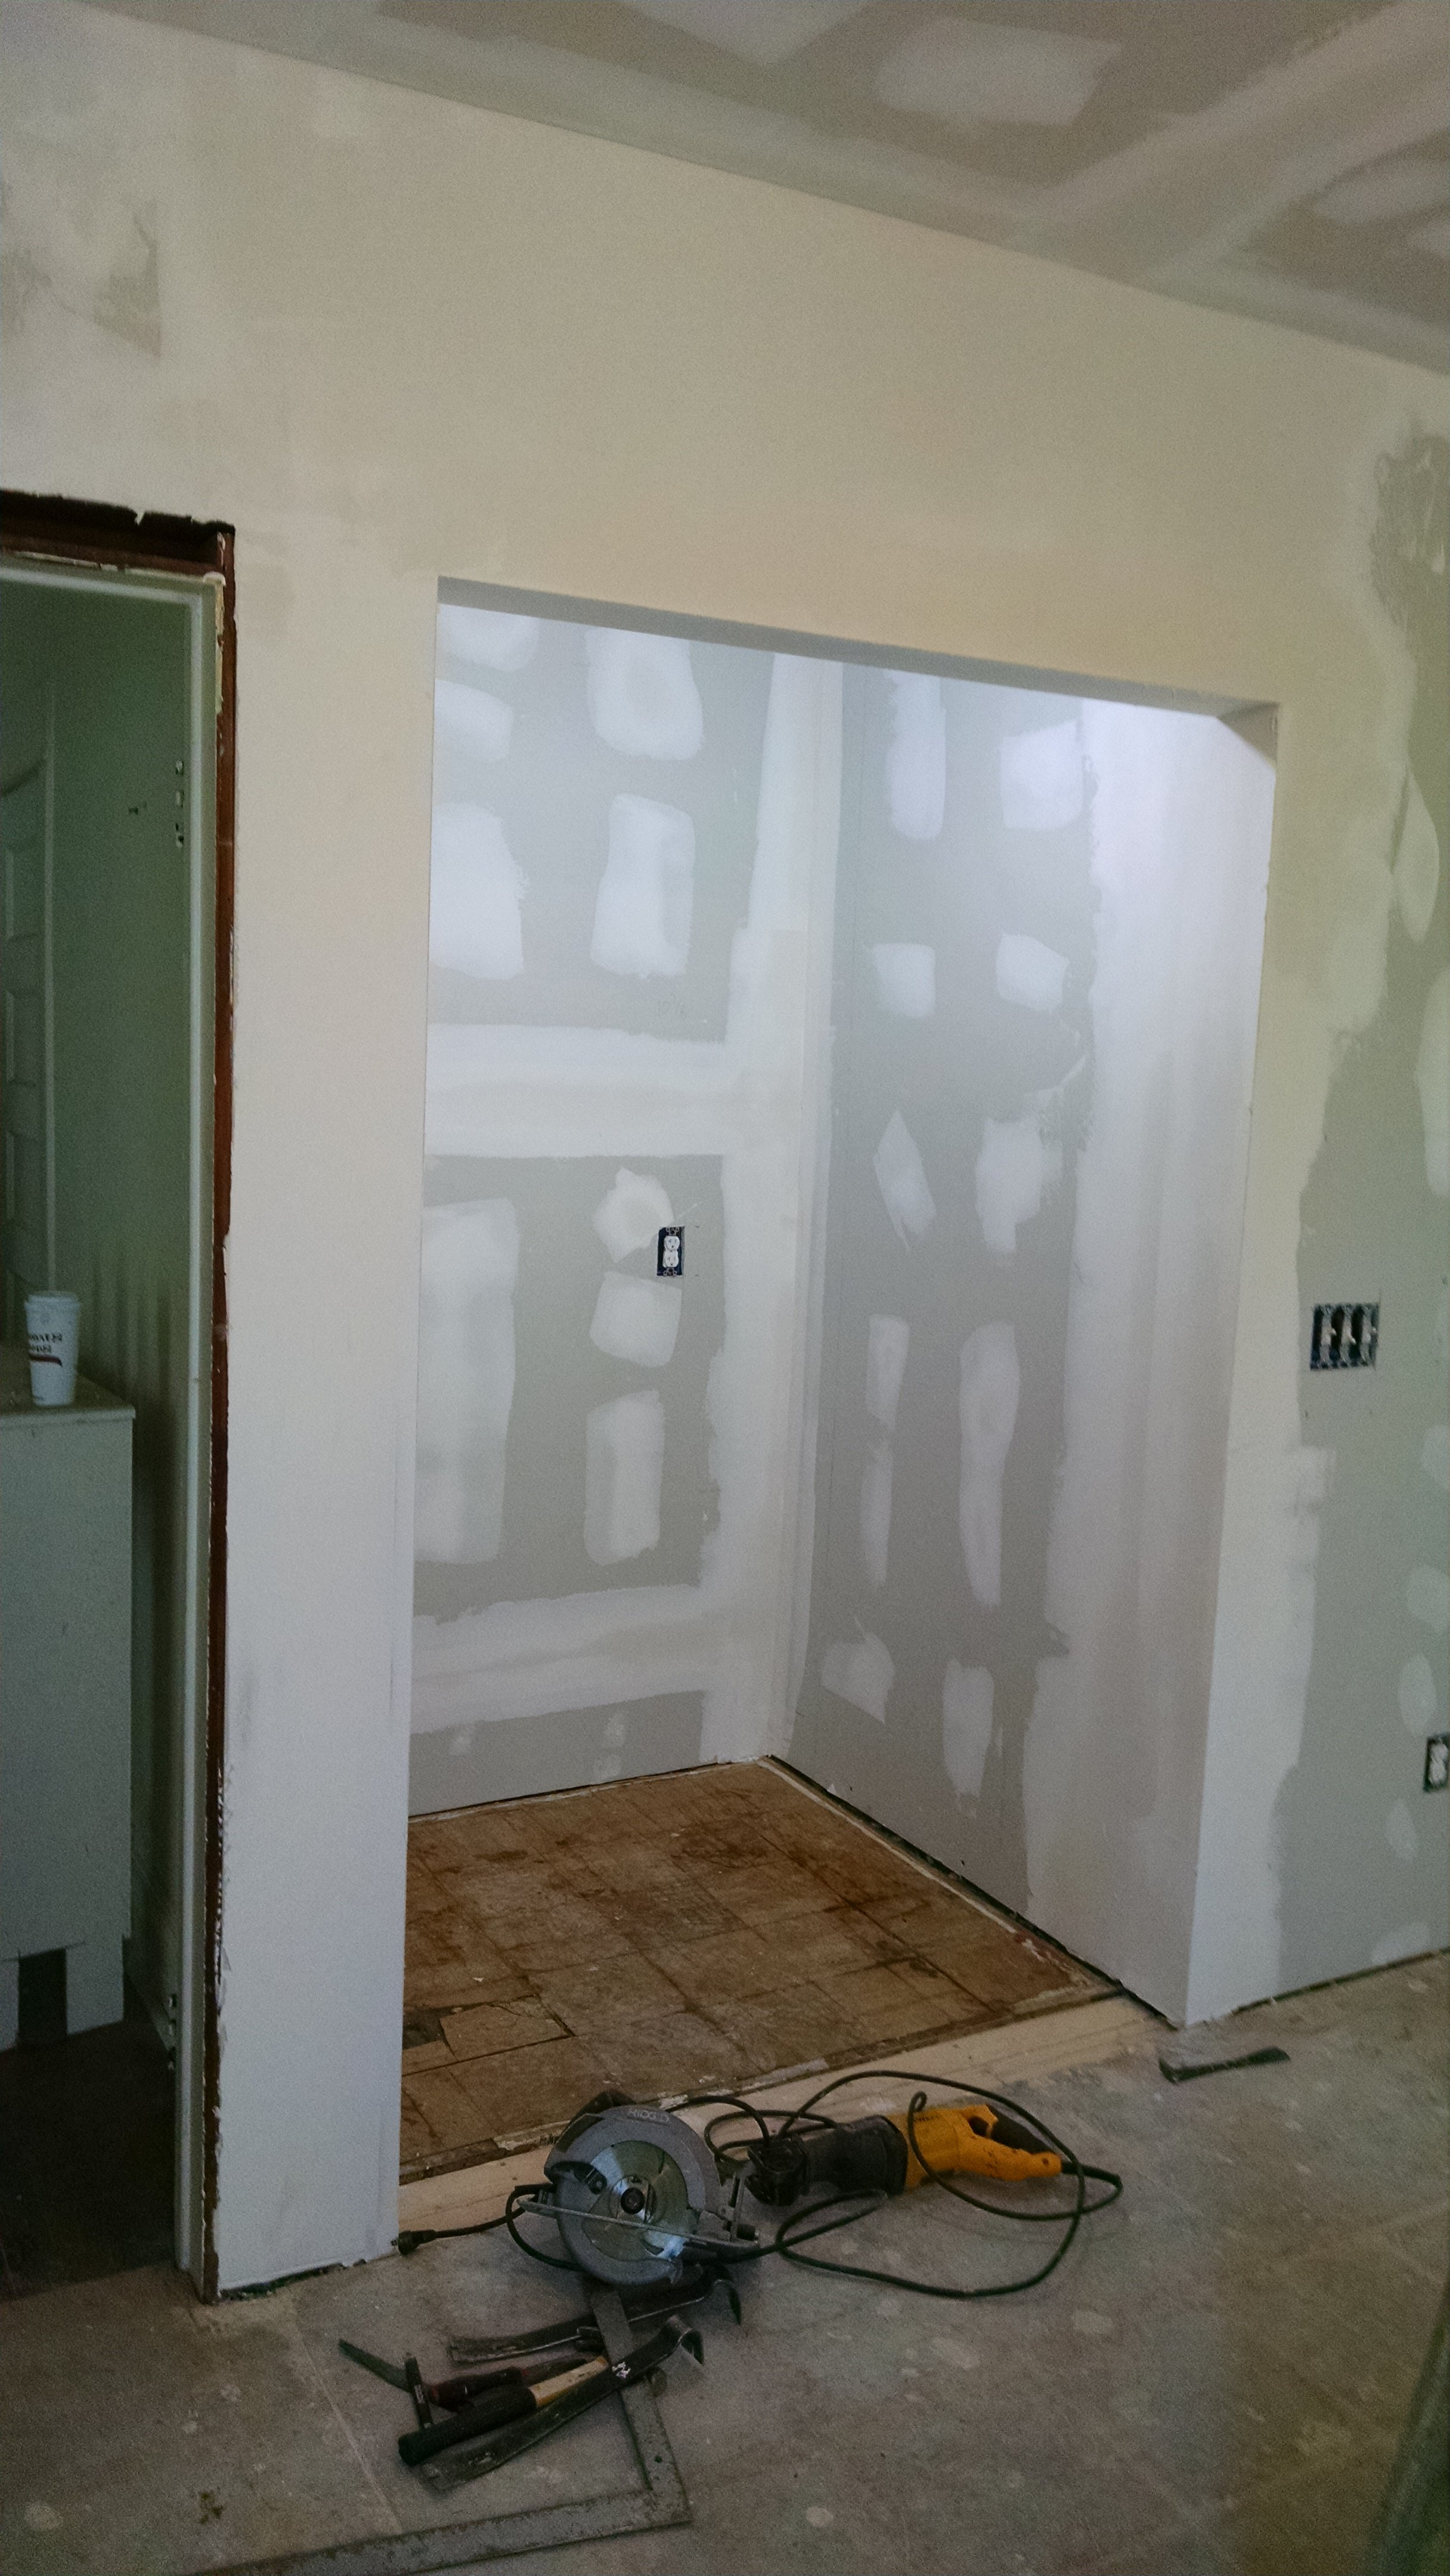 Bathroom & Kitchen Remodeling Albany, Schenectady & Clifton Park, NY